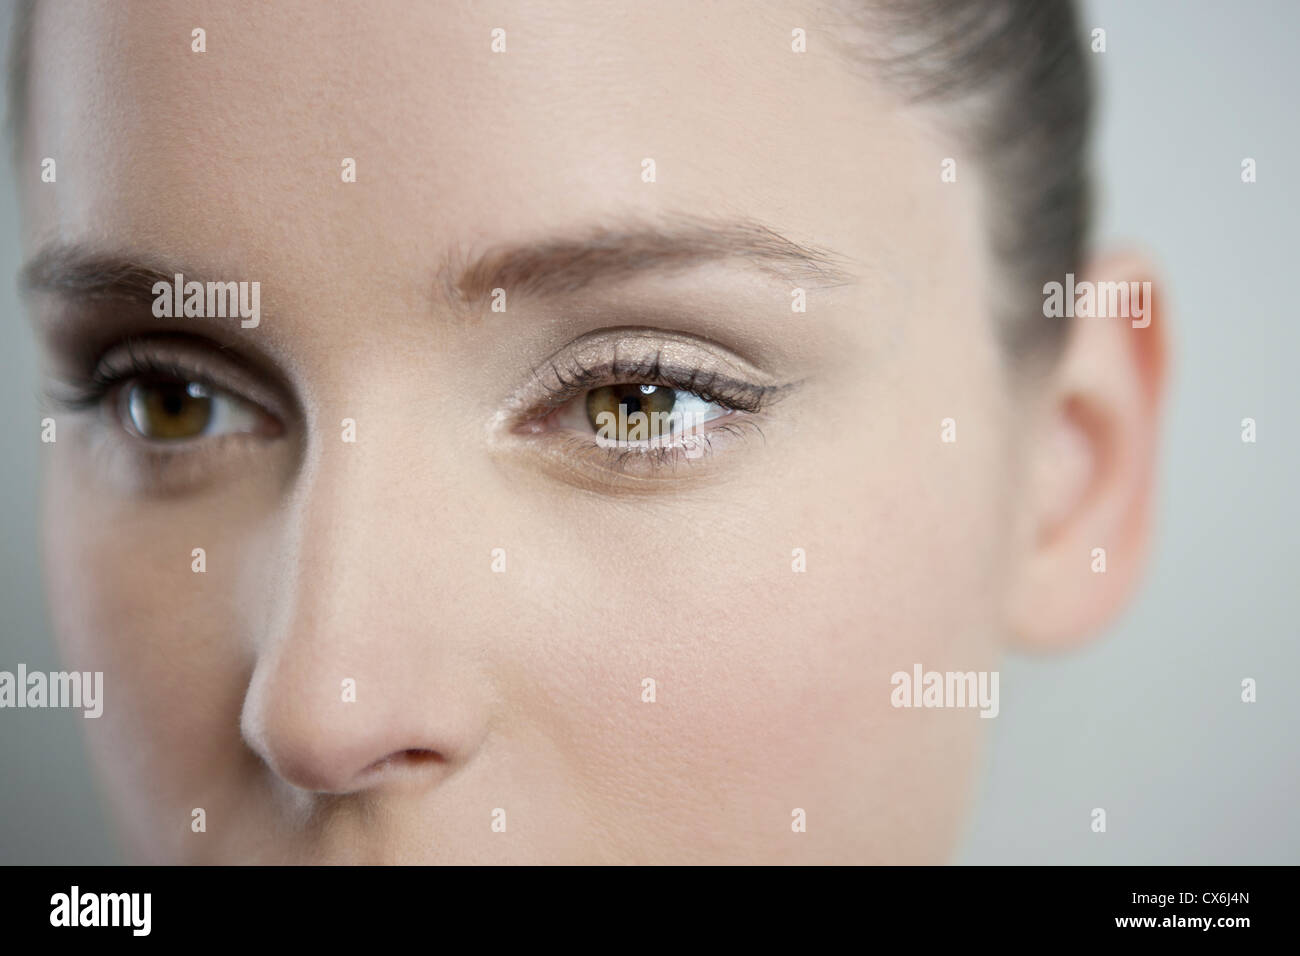 A young woman looking away, focus on left eye - Stock Image